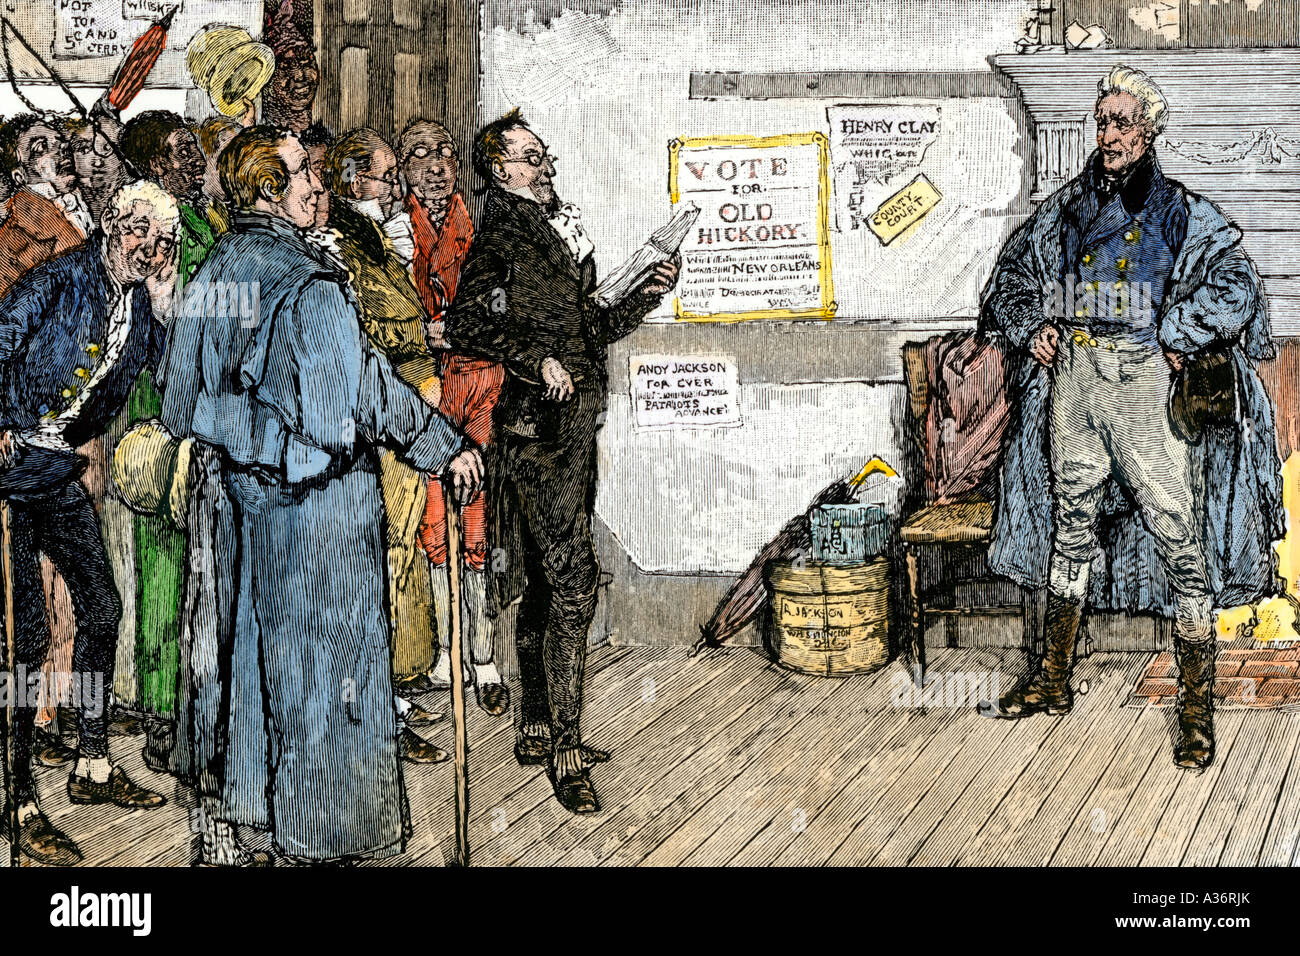 Citizen addressing Andrew Jackson during his presidential election campaign 1820s. Hand-colored woodcut - Stock Image